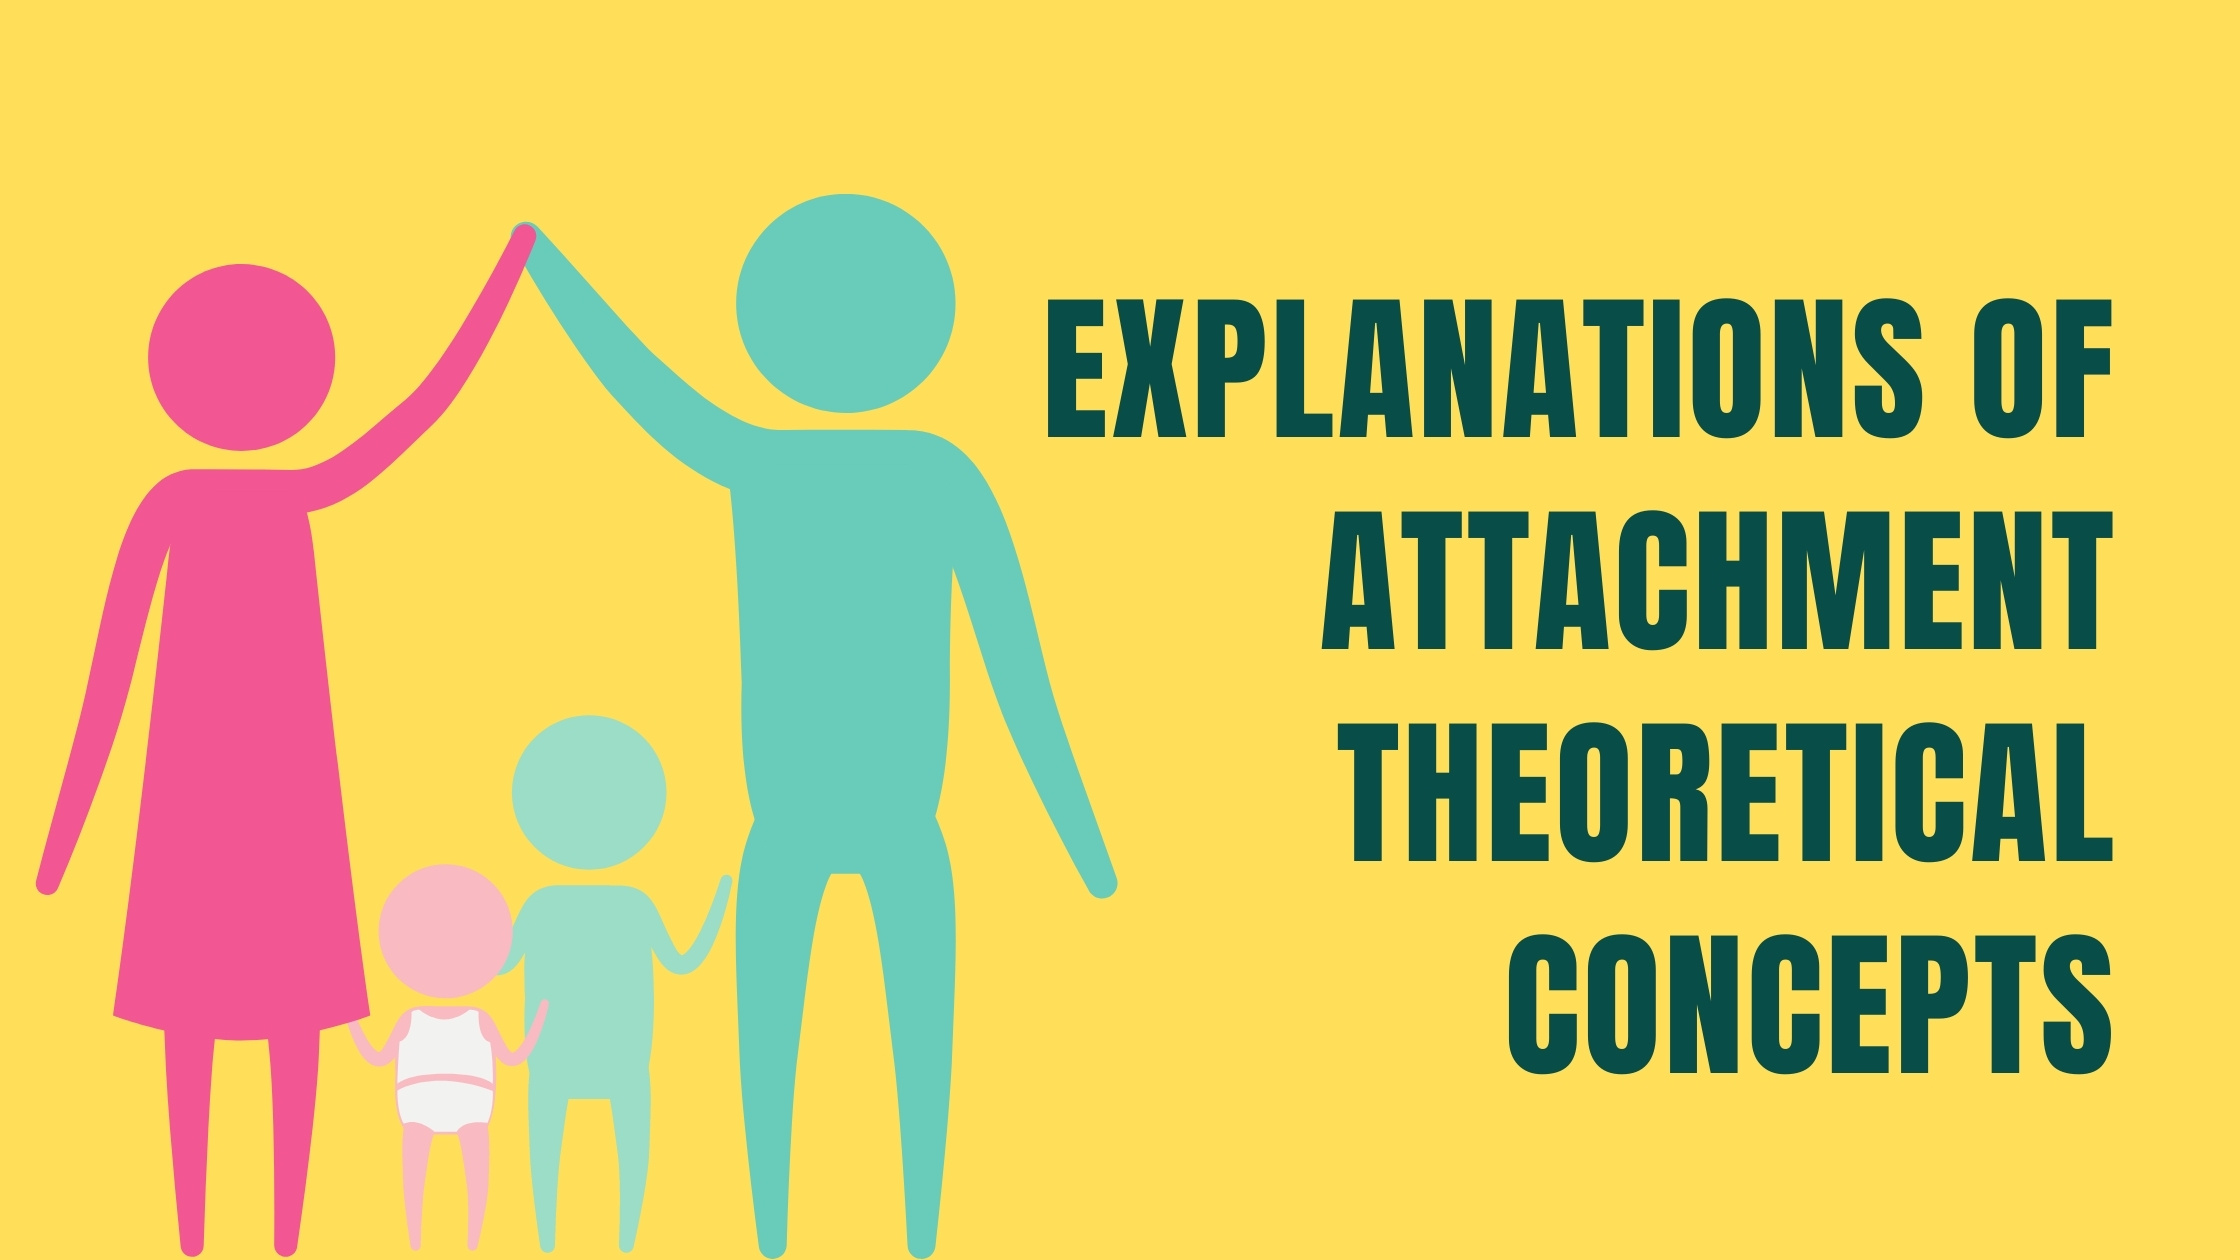 Explanations of Attachment Theoretical Concepts